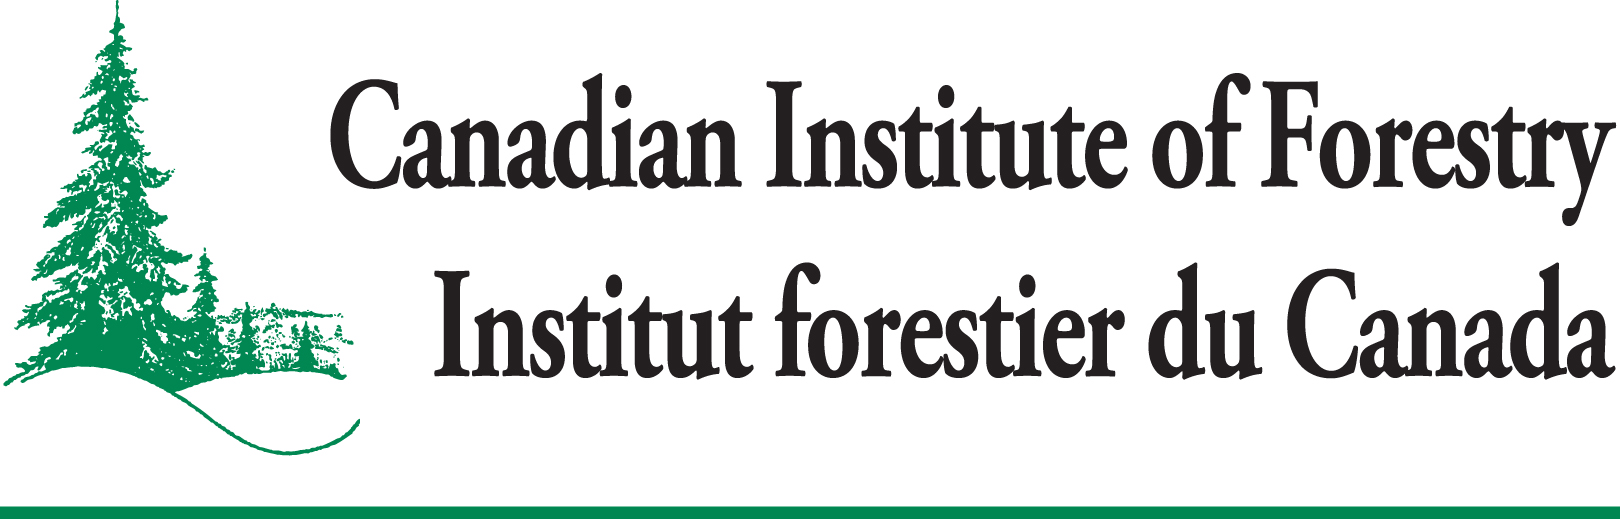 Canadian Institute of Forestry